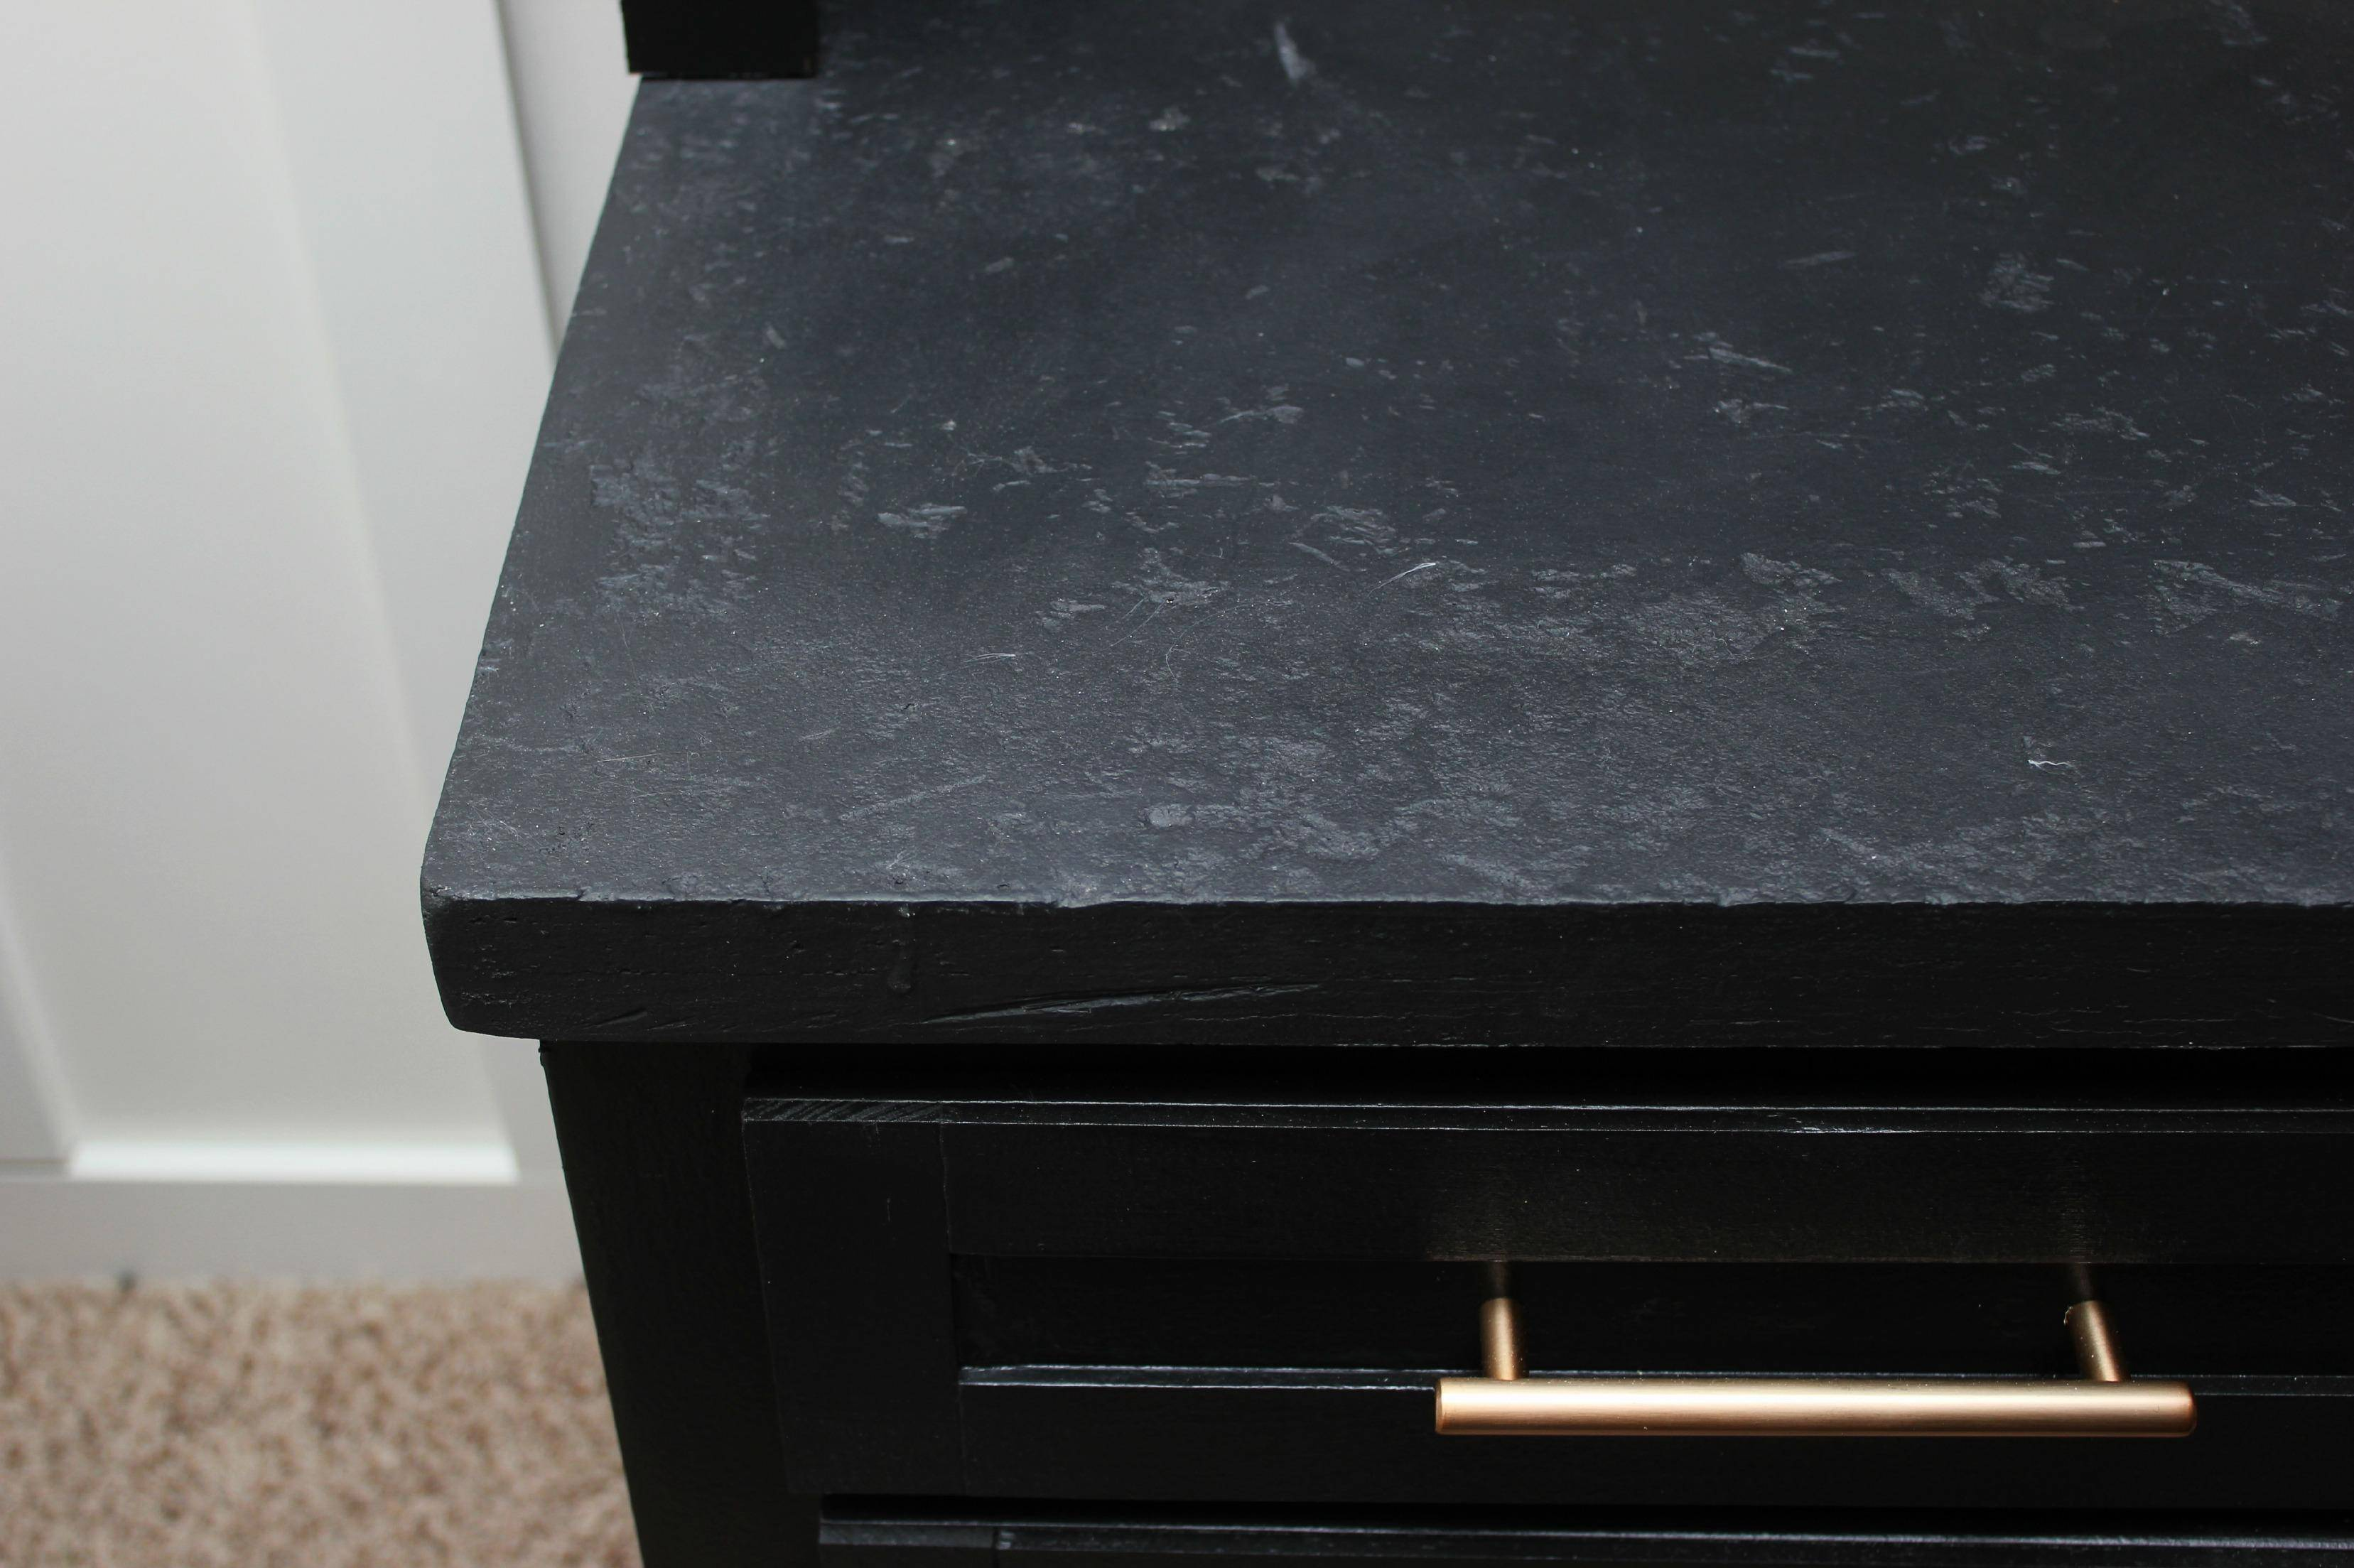 The Diy Designer How To Make Your Laminate Countertop Look Like Stone Noogatoday